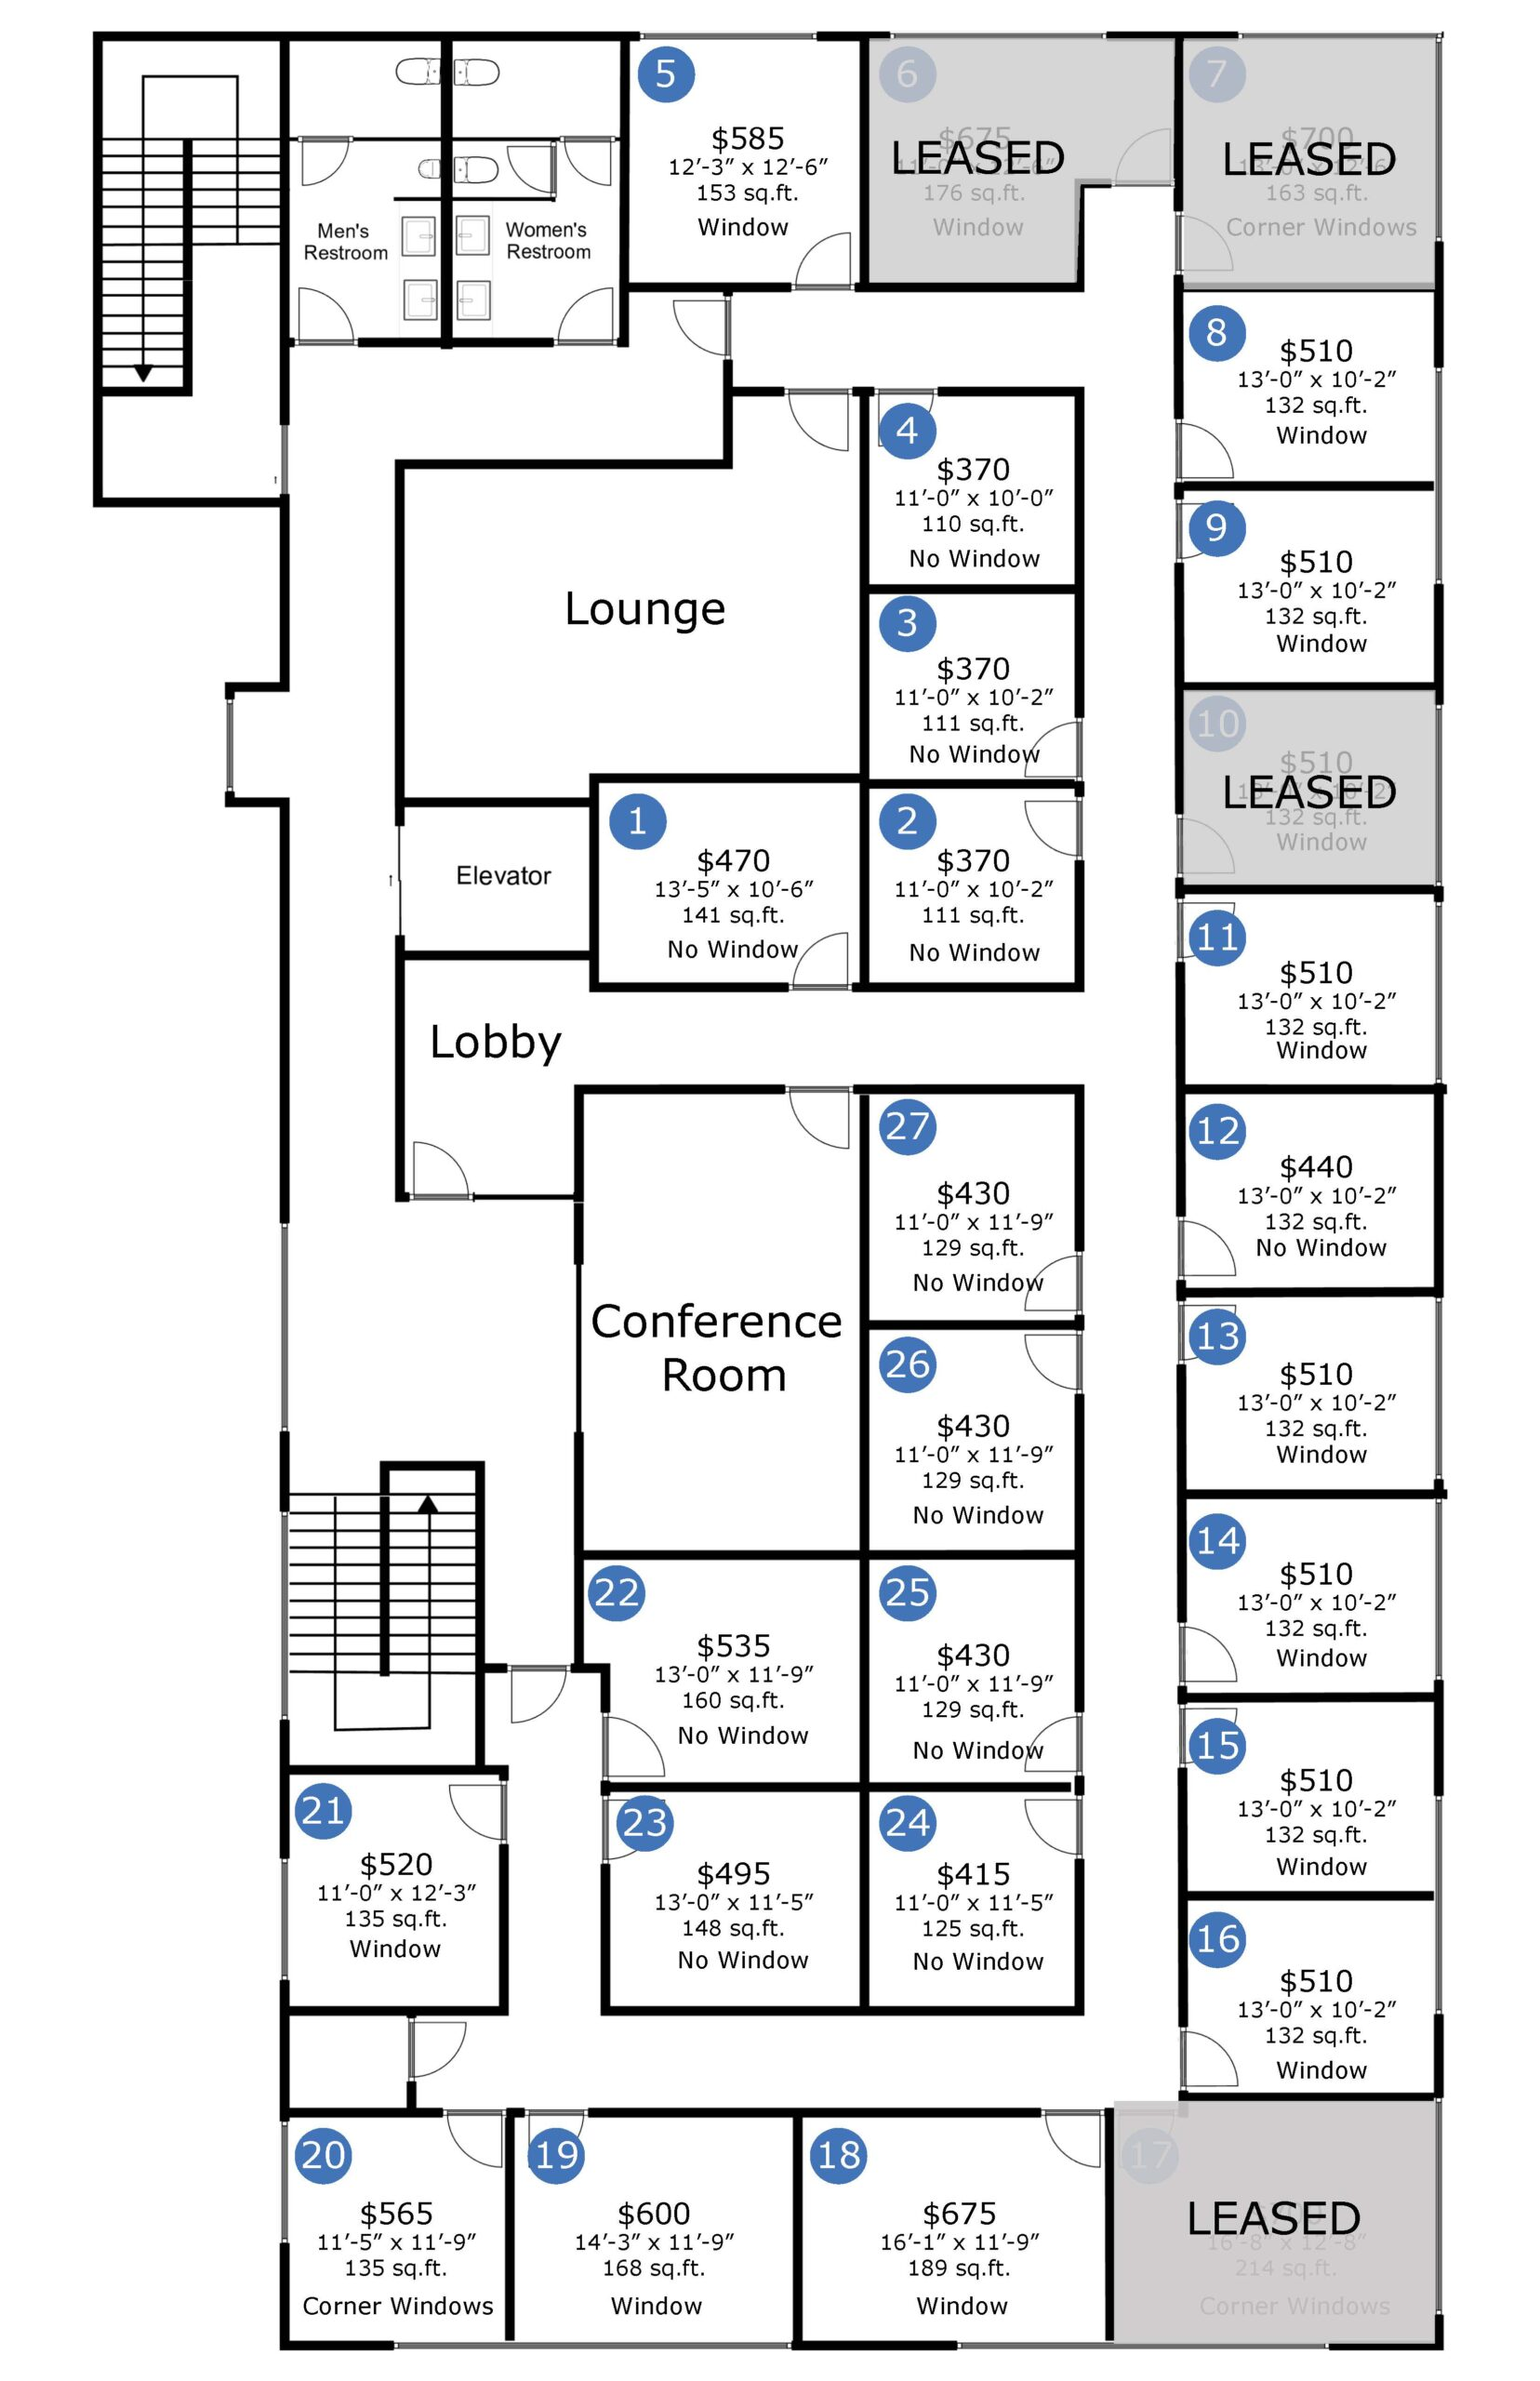 CES Floor Plan with size and price-2021-10-04